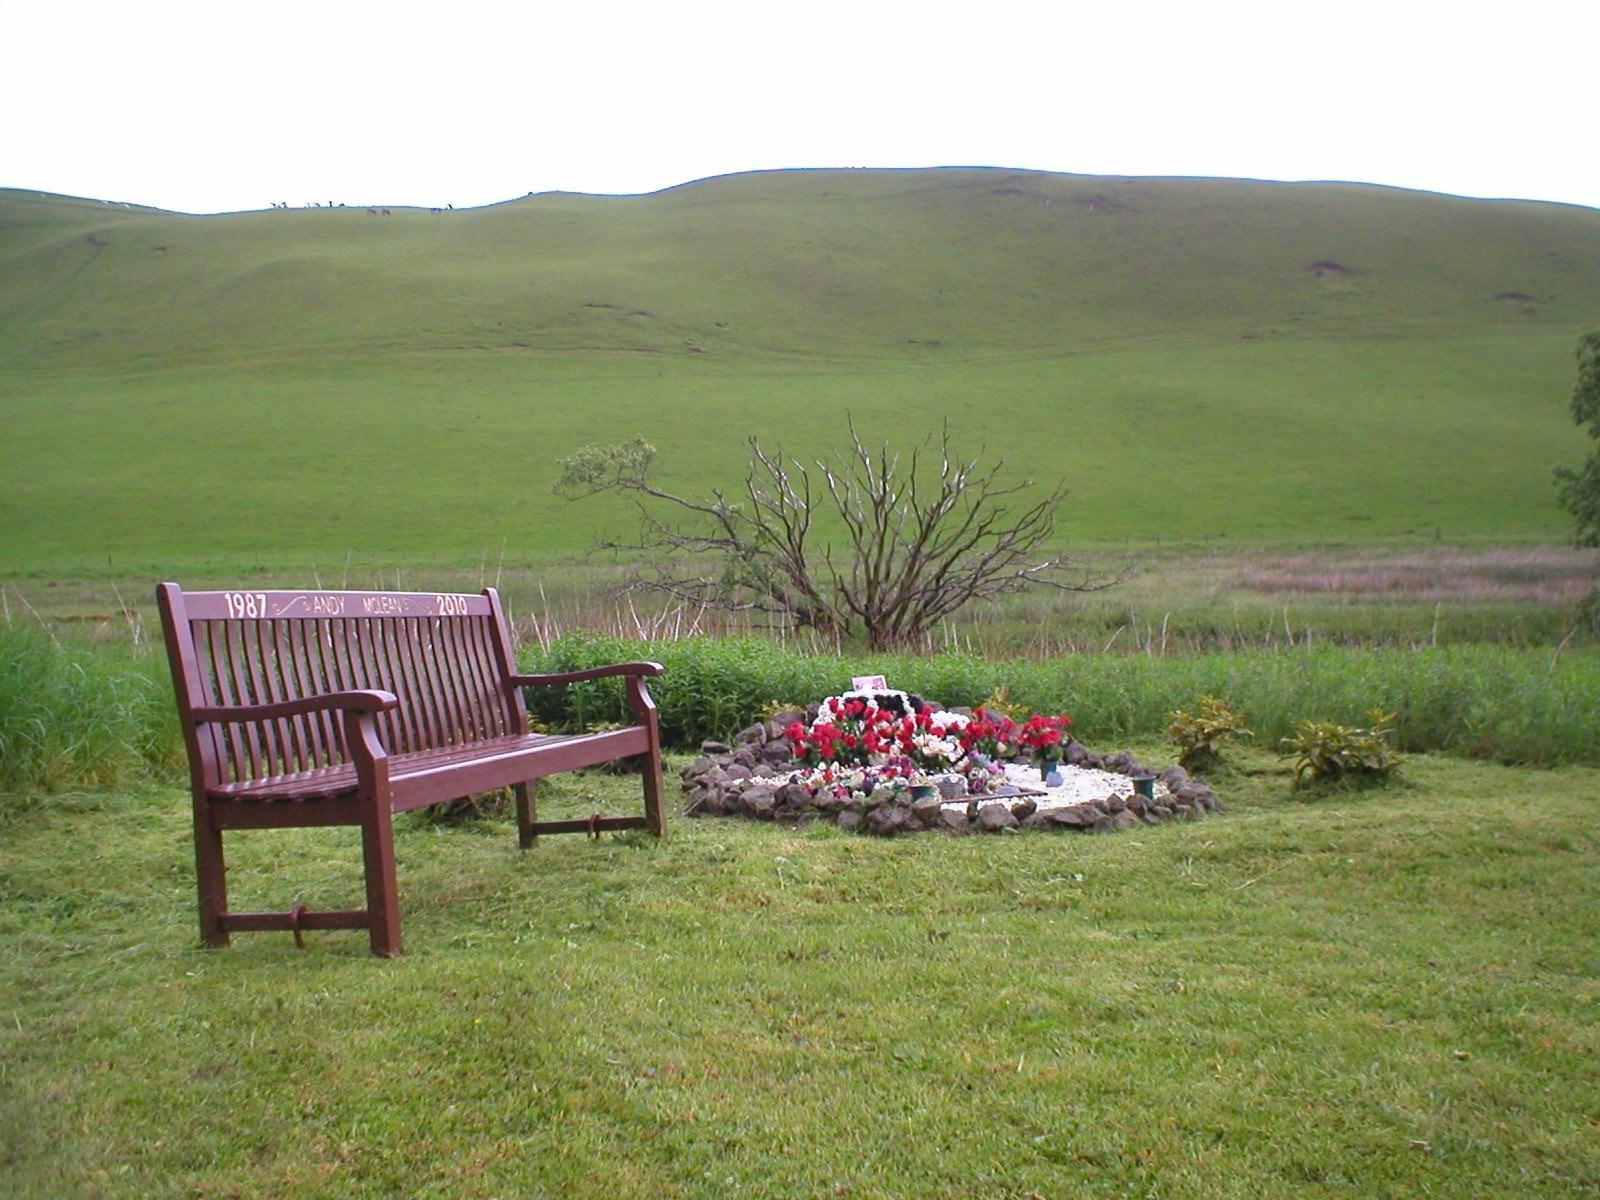 ANDYS MEMORIAL at the place where he died.